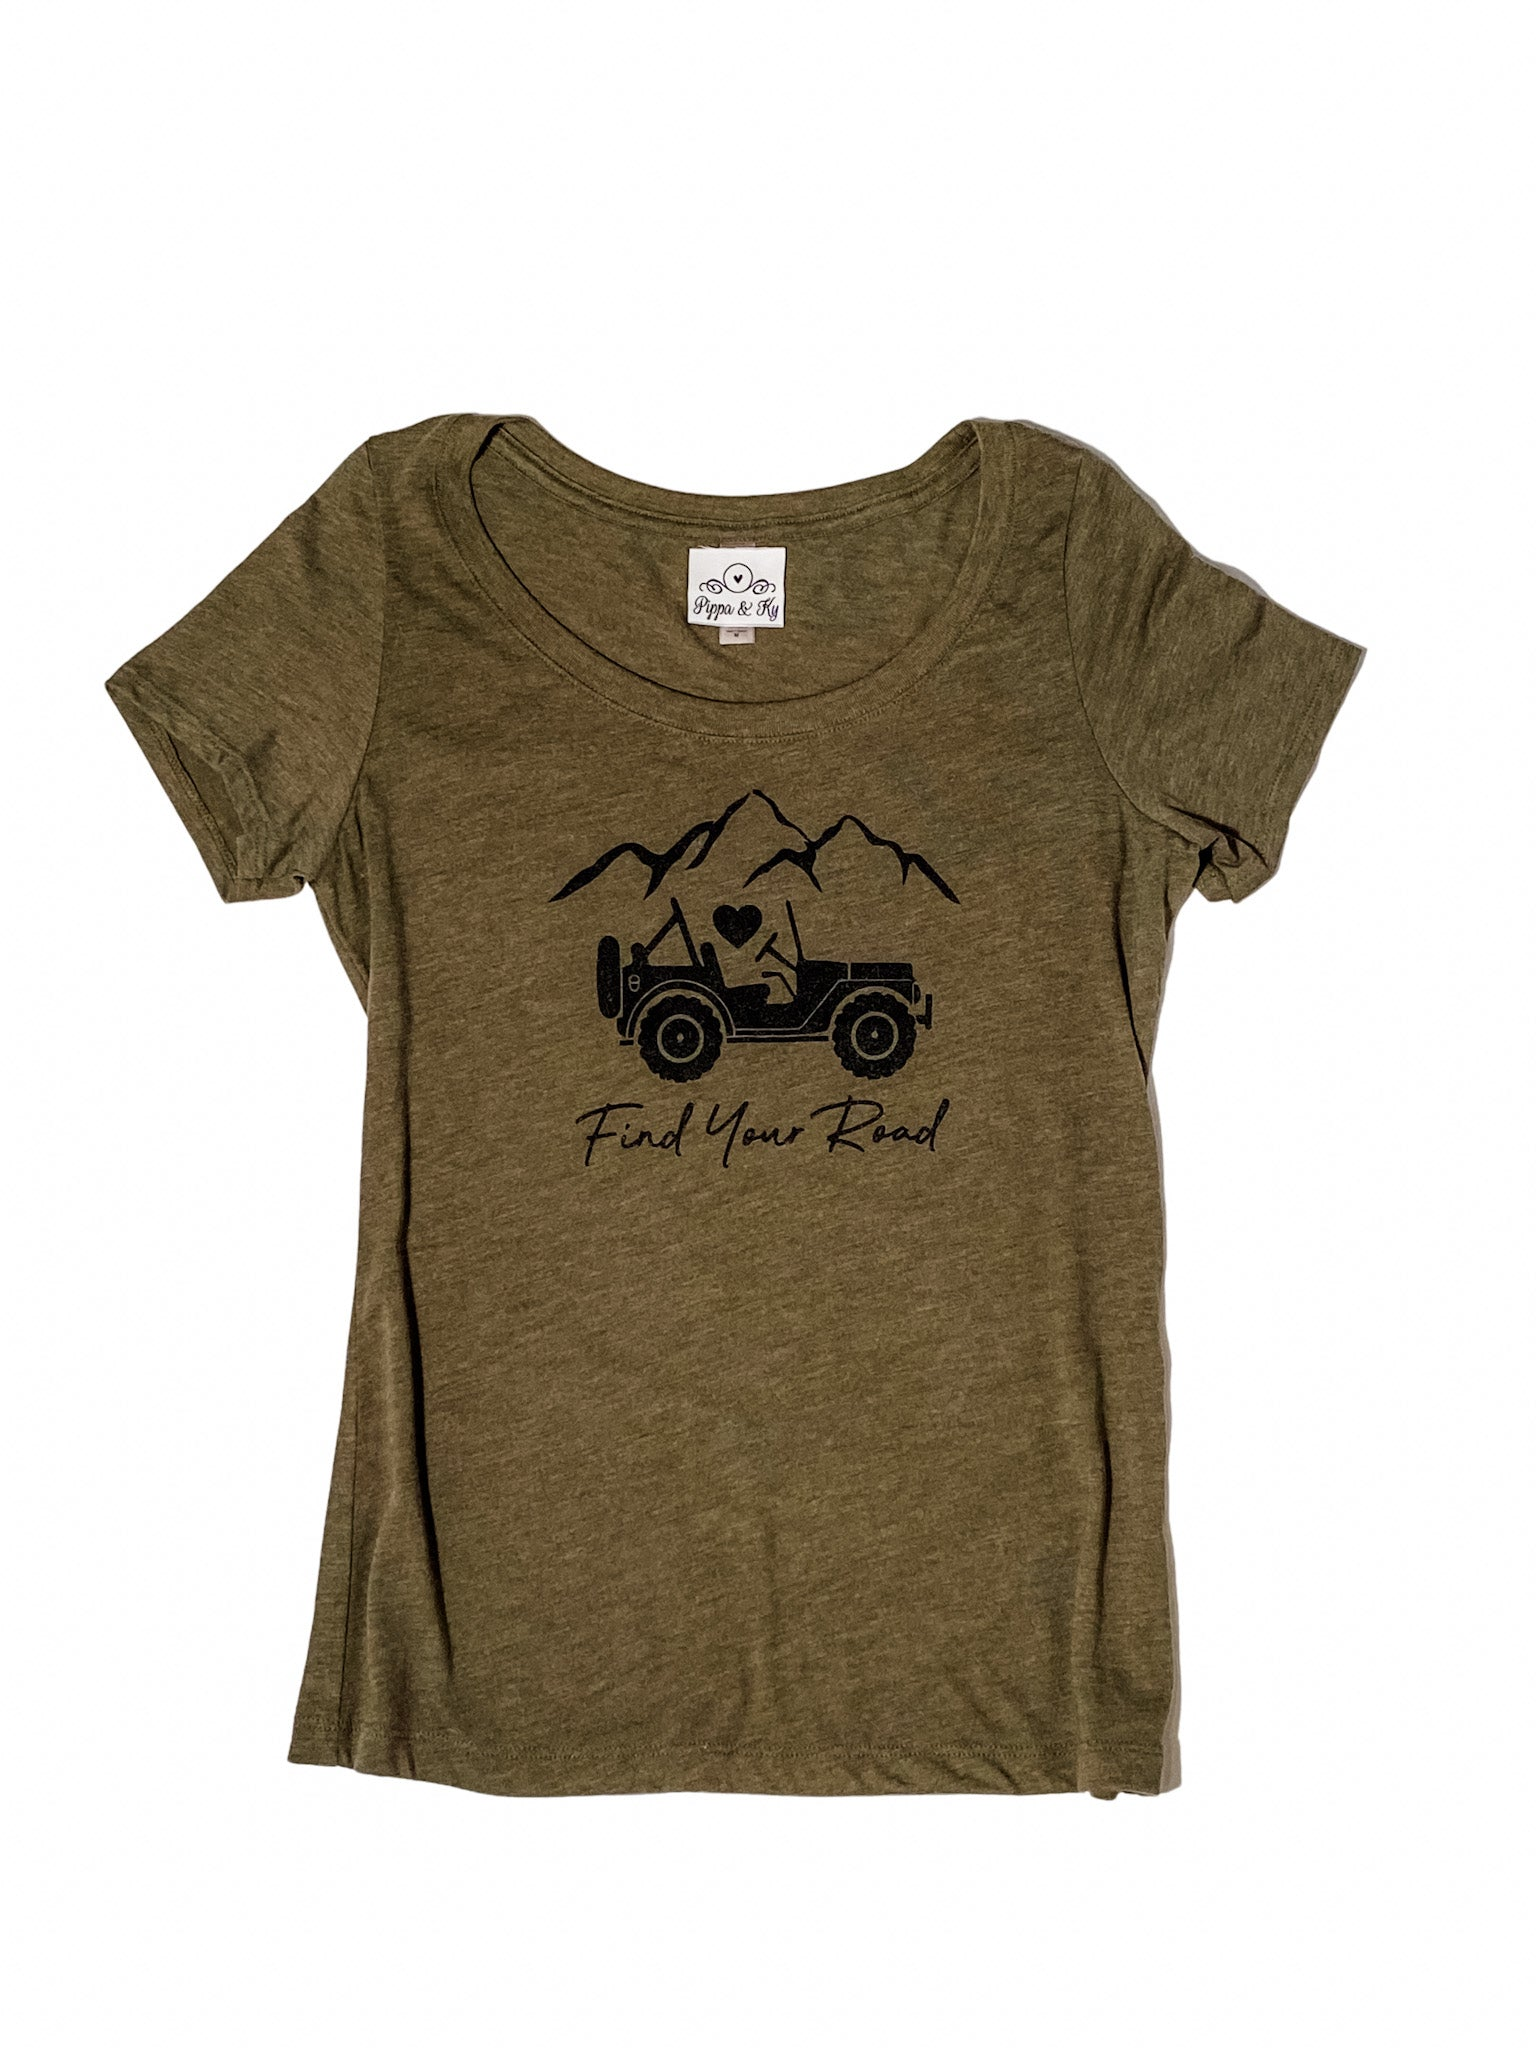 Find Your Road Olive T-Shirt